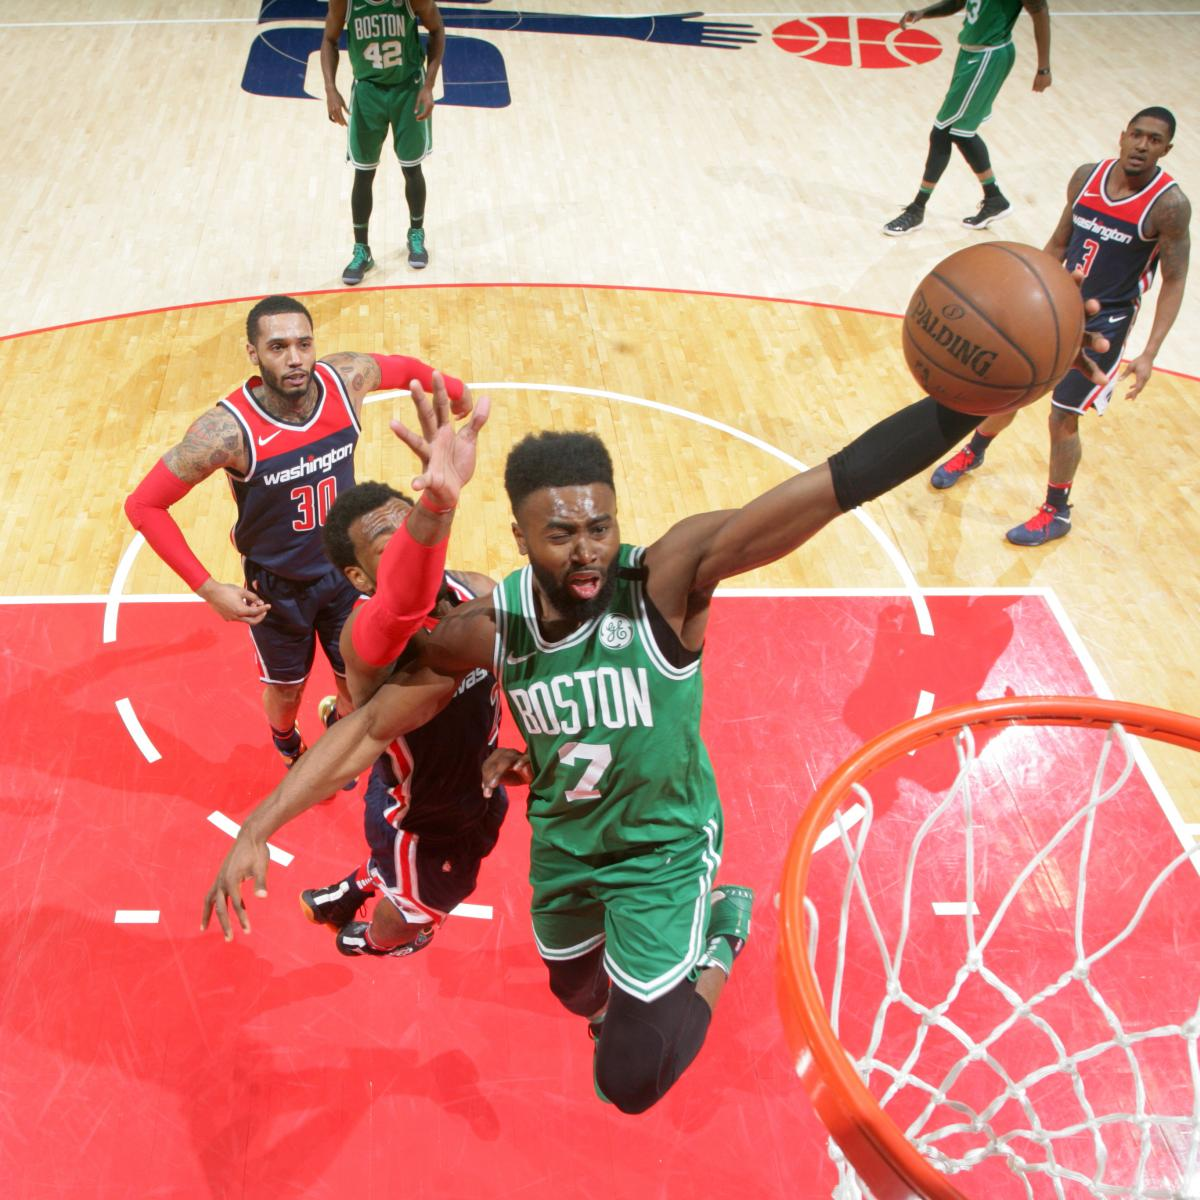 NBA Playoffs 2018: Game Times, TV Schedule And Predictions